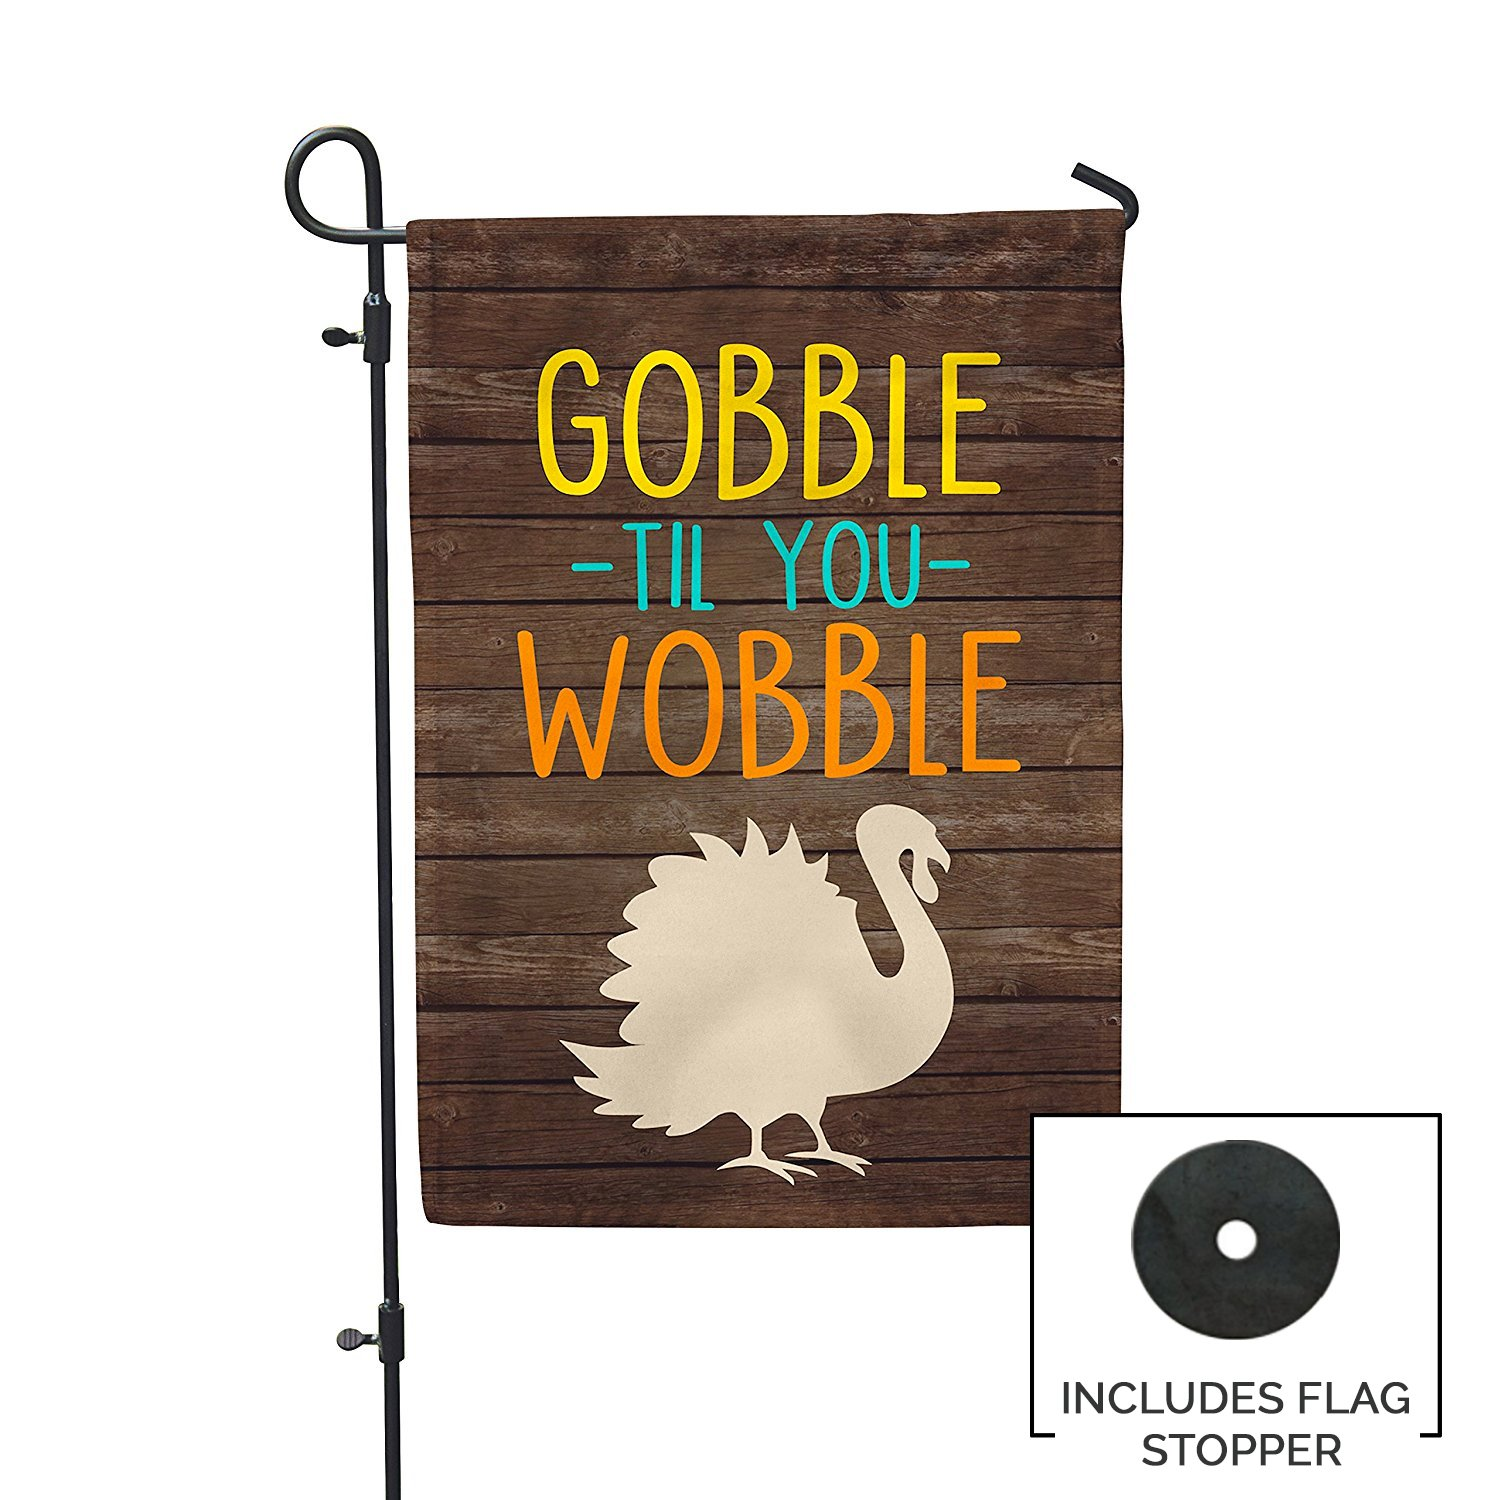 Gobble Til You Wobble Thanksgiving Garden Flag Outdoor Patio Seasonal Holiday Fabric 12.5'' X 18'' by Second East (Image #1)